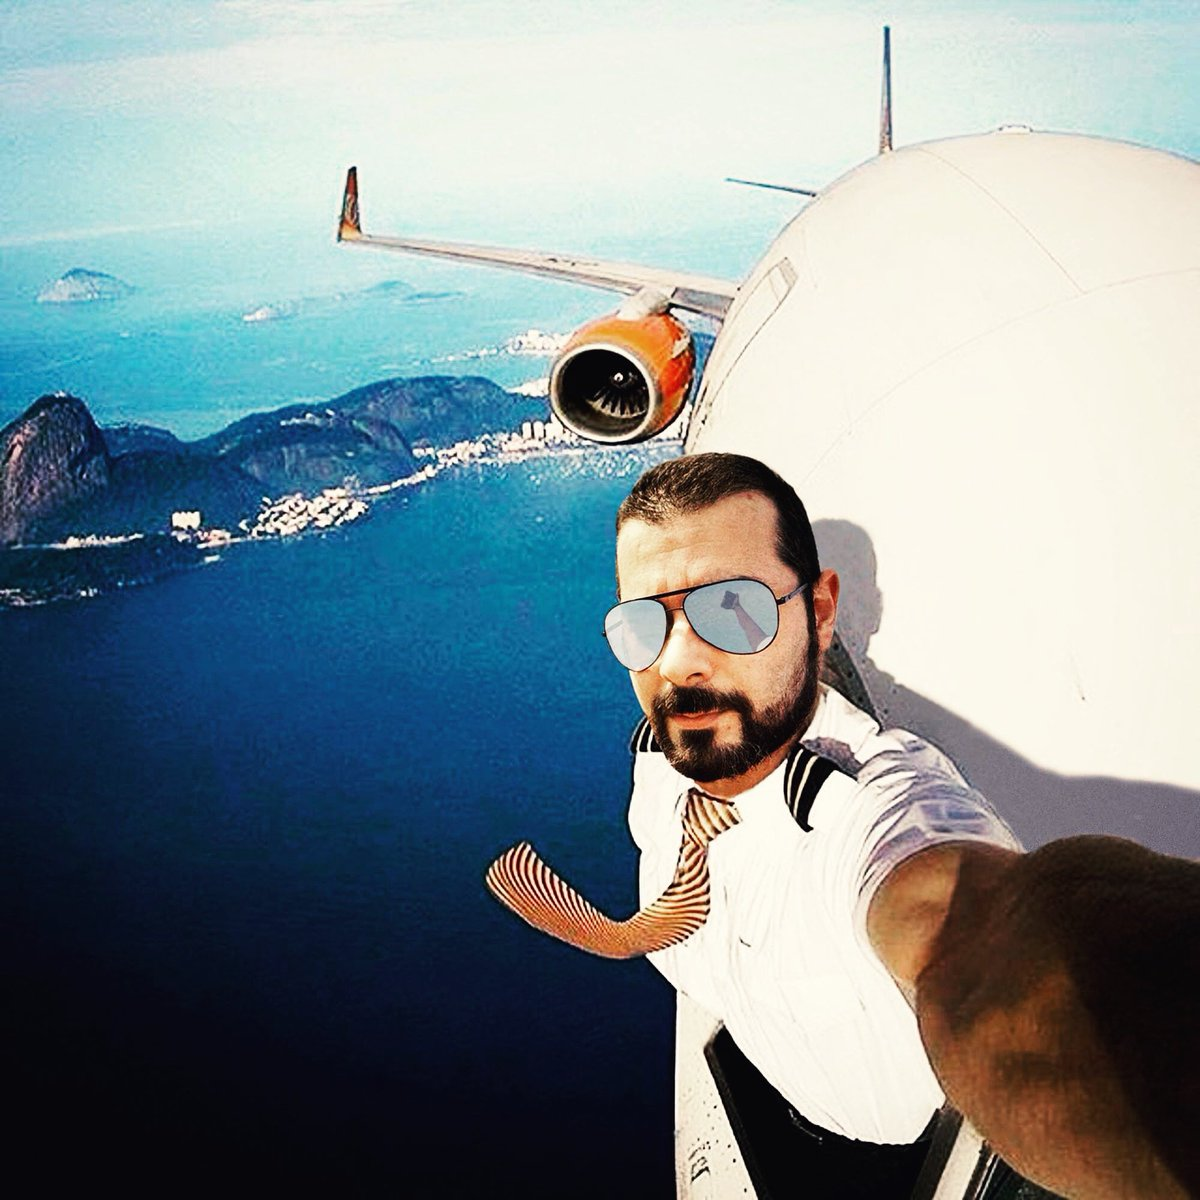 I miss flying and meanwhile taking a selfie 😂😂😂  #missflying #vacation #COVID19 #lol #whendoesitstop #Goodtimes #lockdown #photoshop #goodmood #takecare #besafe